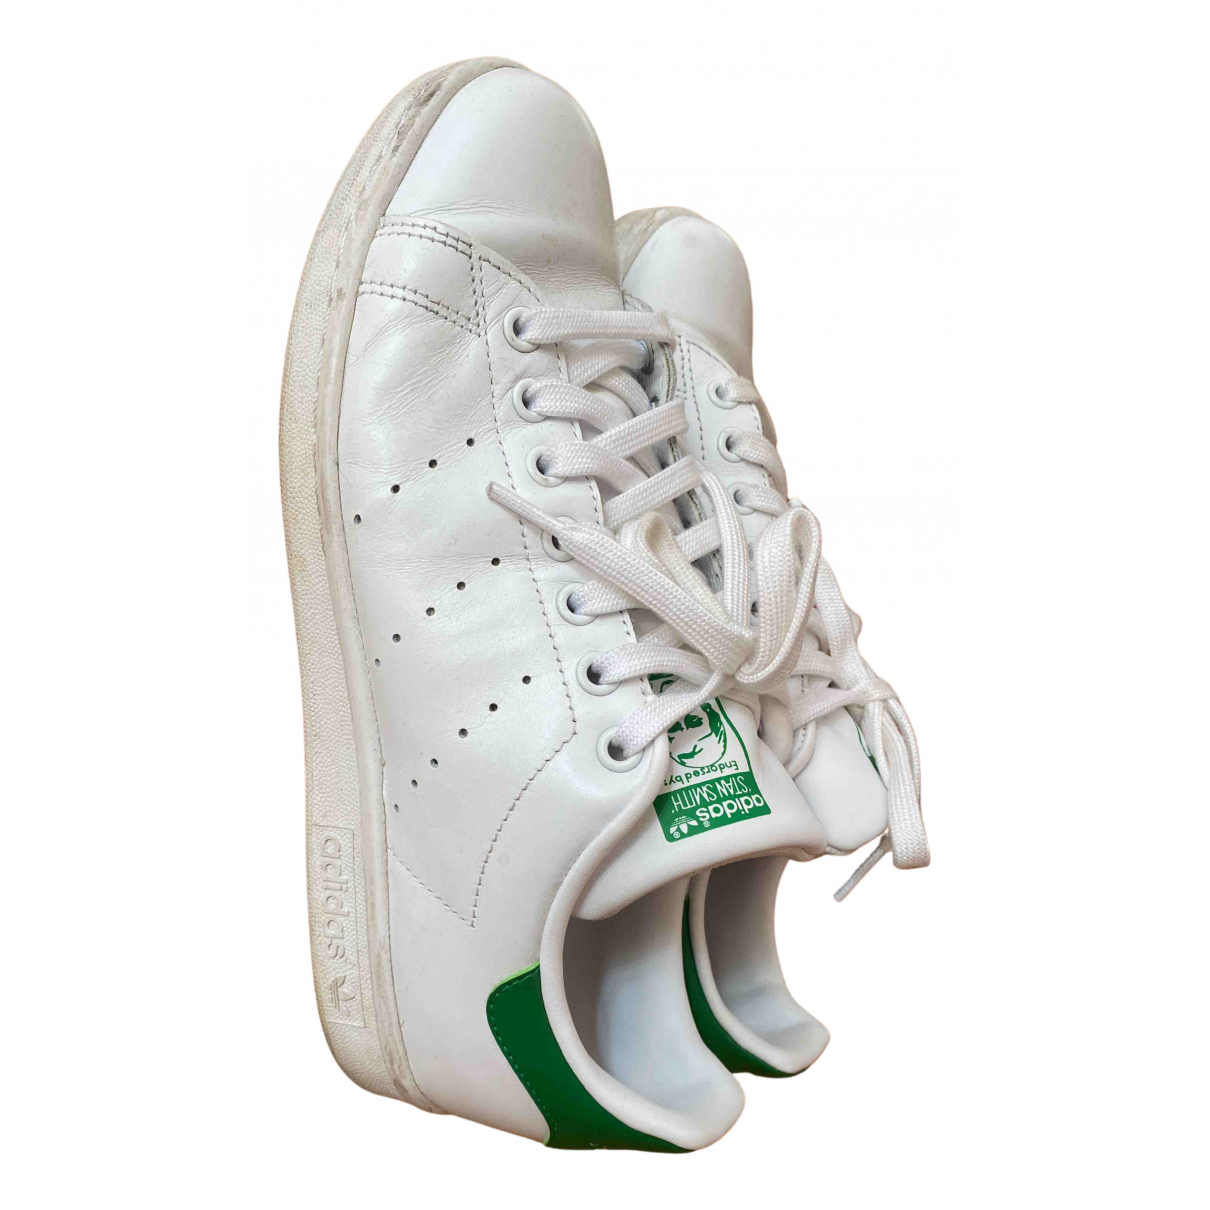 Adidas Stan Smith White Leather Trainers for Men 40.5 EU